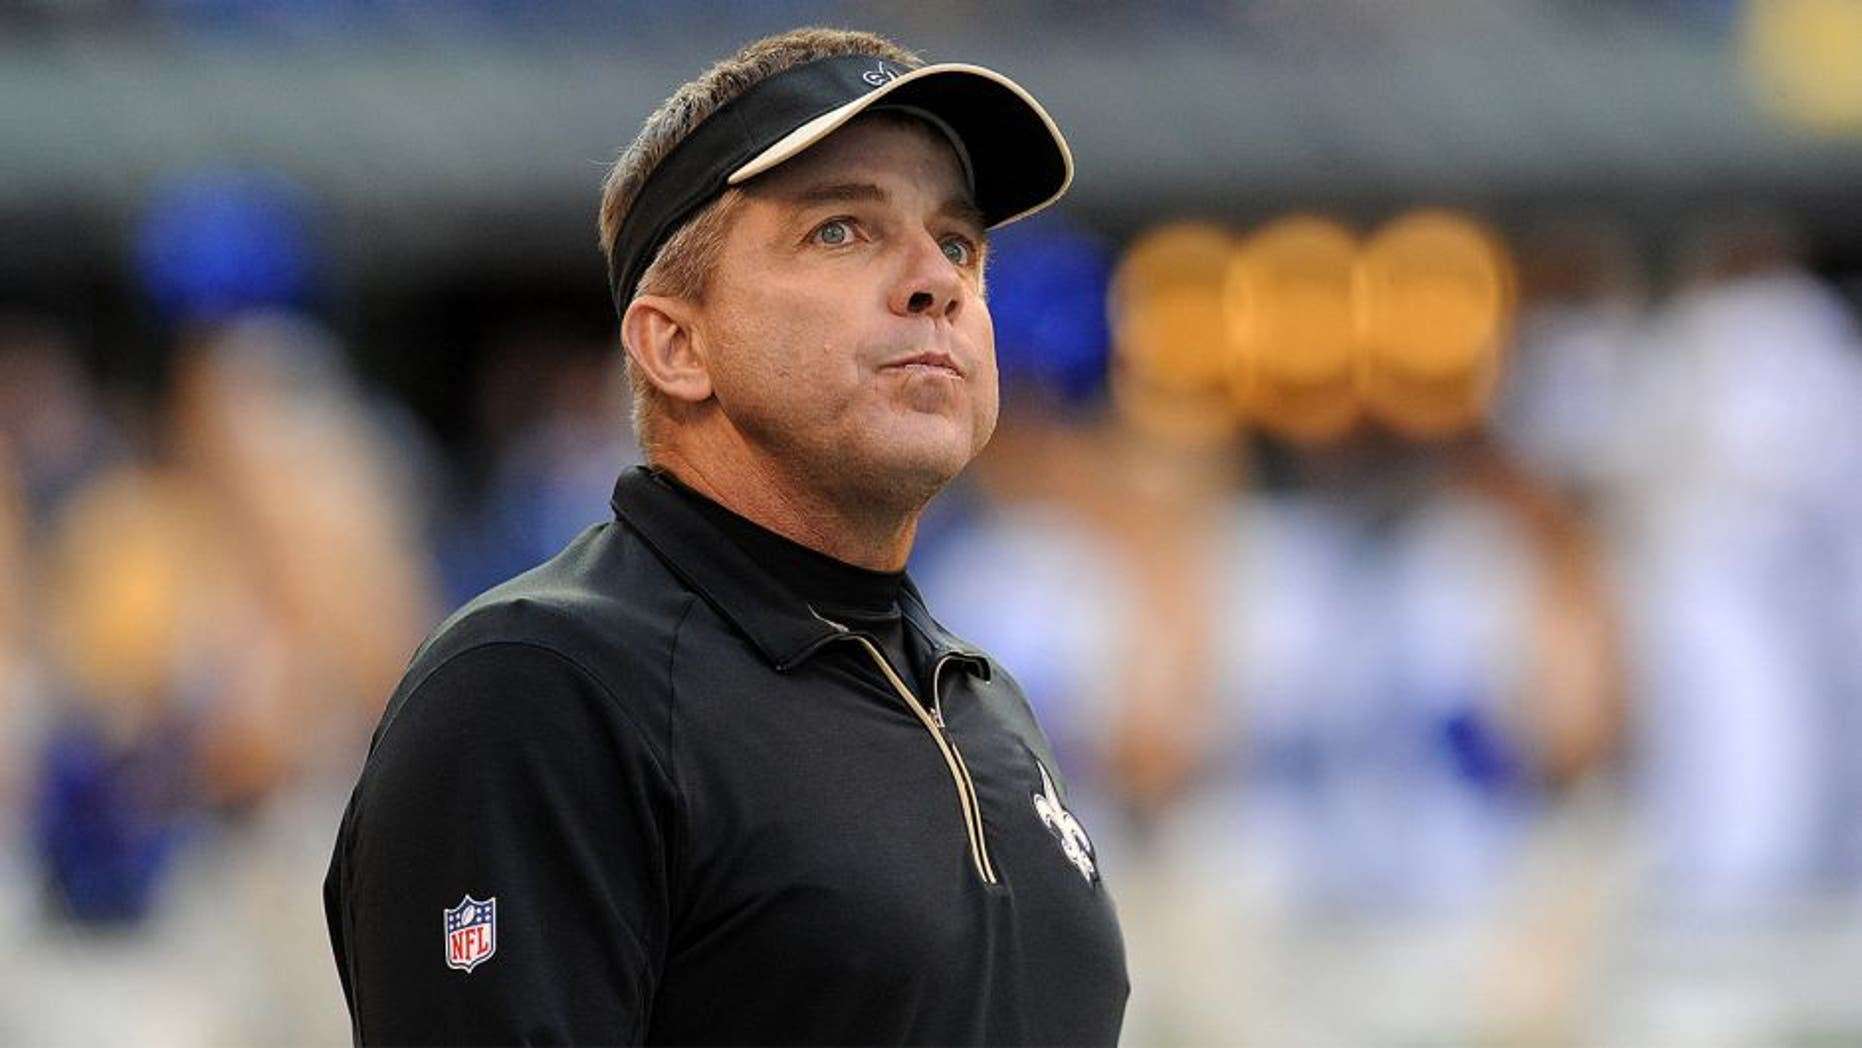 Oct 25, 2015; Indianapolis, IN, USA; New Orleans Saints head coach Sean Payton looks at the scoreboard during the final minutes of their game against the Indianapolis Colts at Lucas Oil Stadium. The Saints went on to win the game, 27-21. Mandatory Credit: Thomas J. Russo-USA TODAY Sports